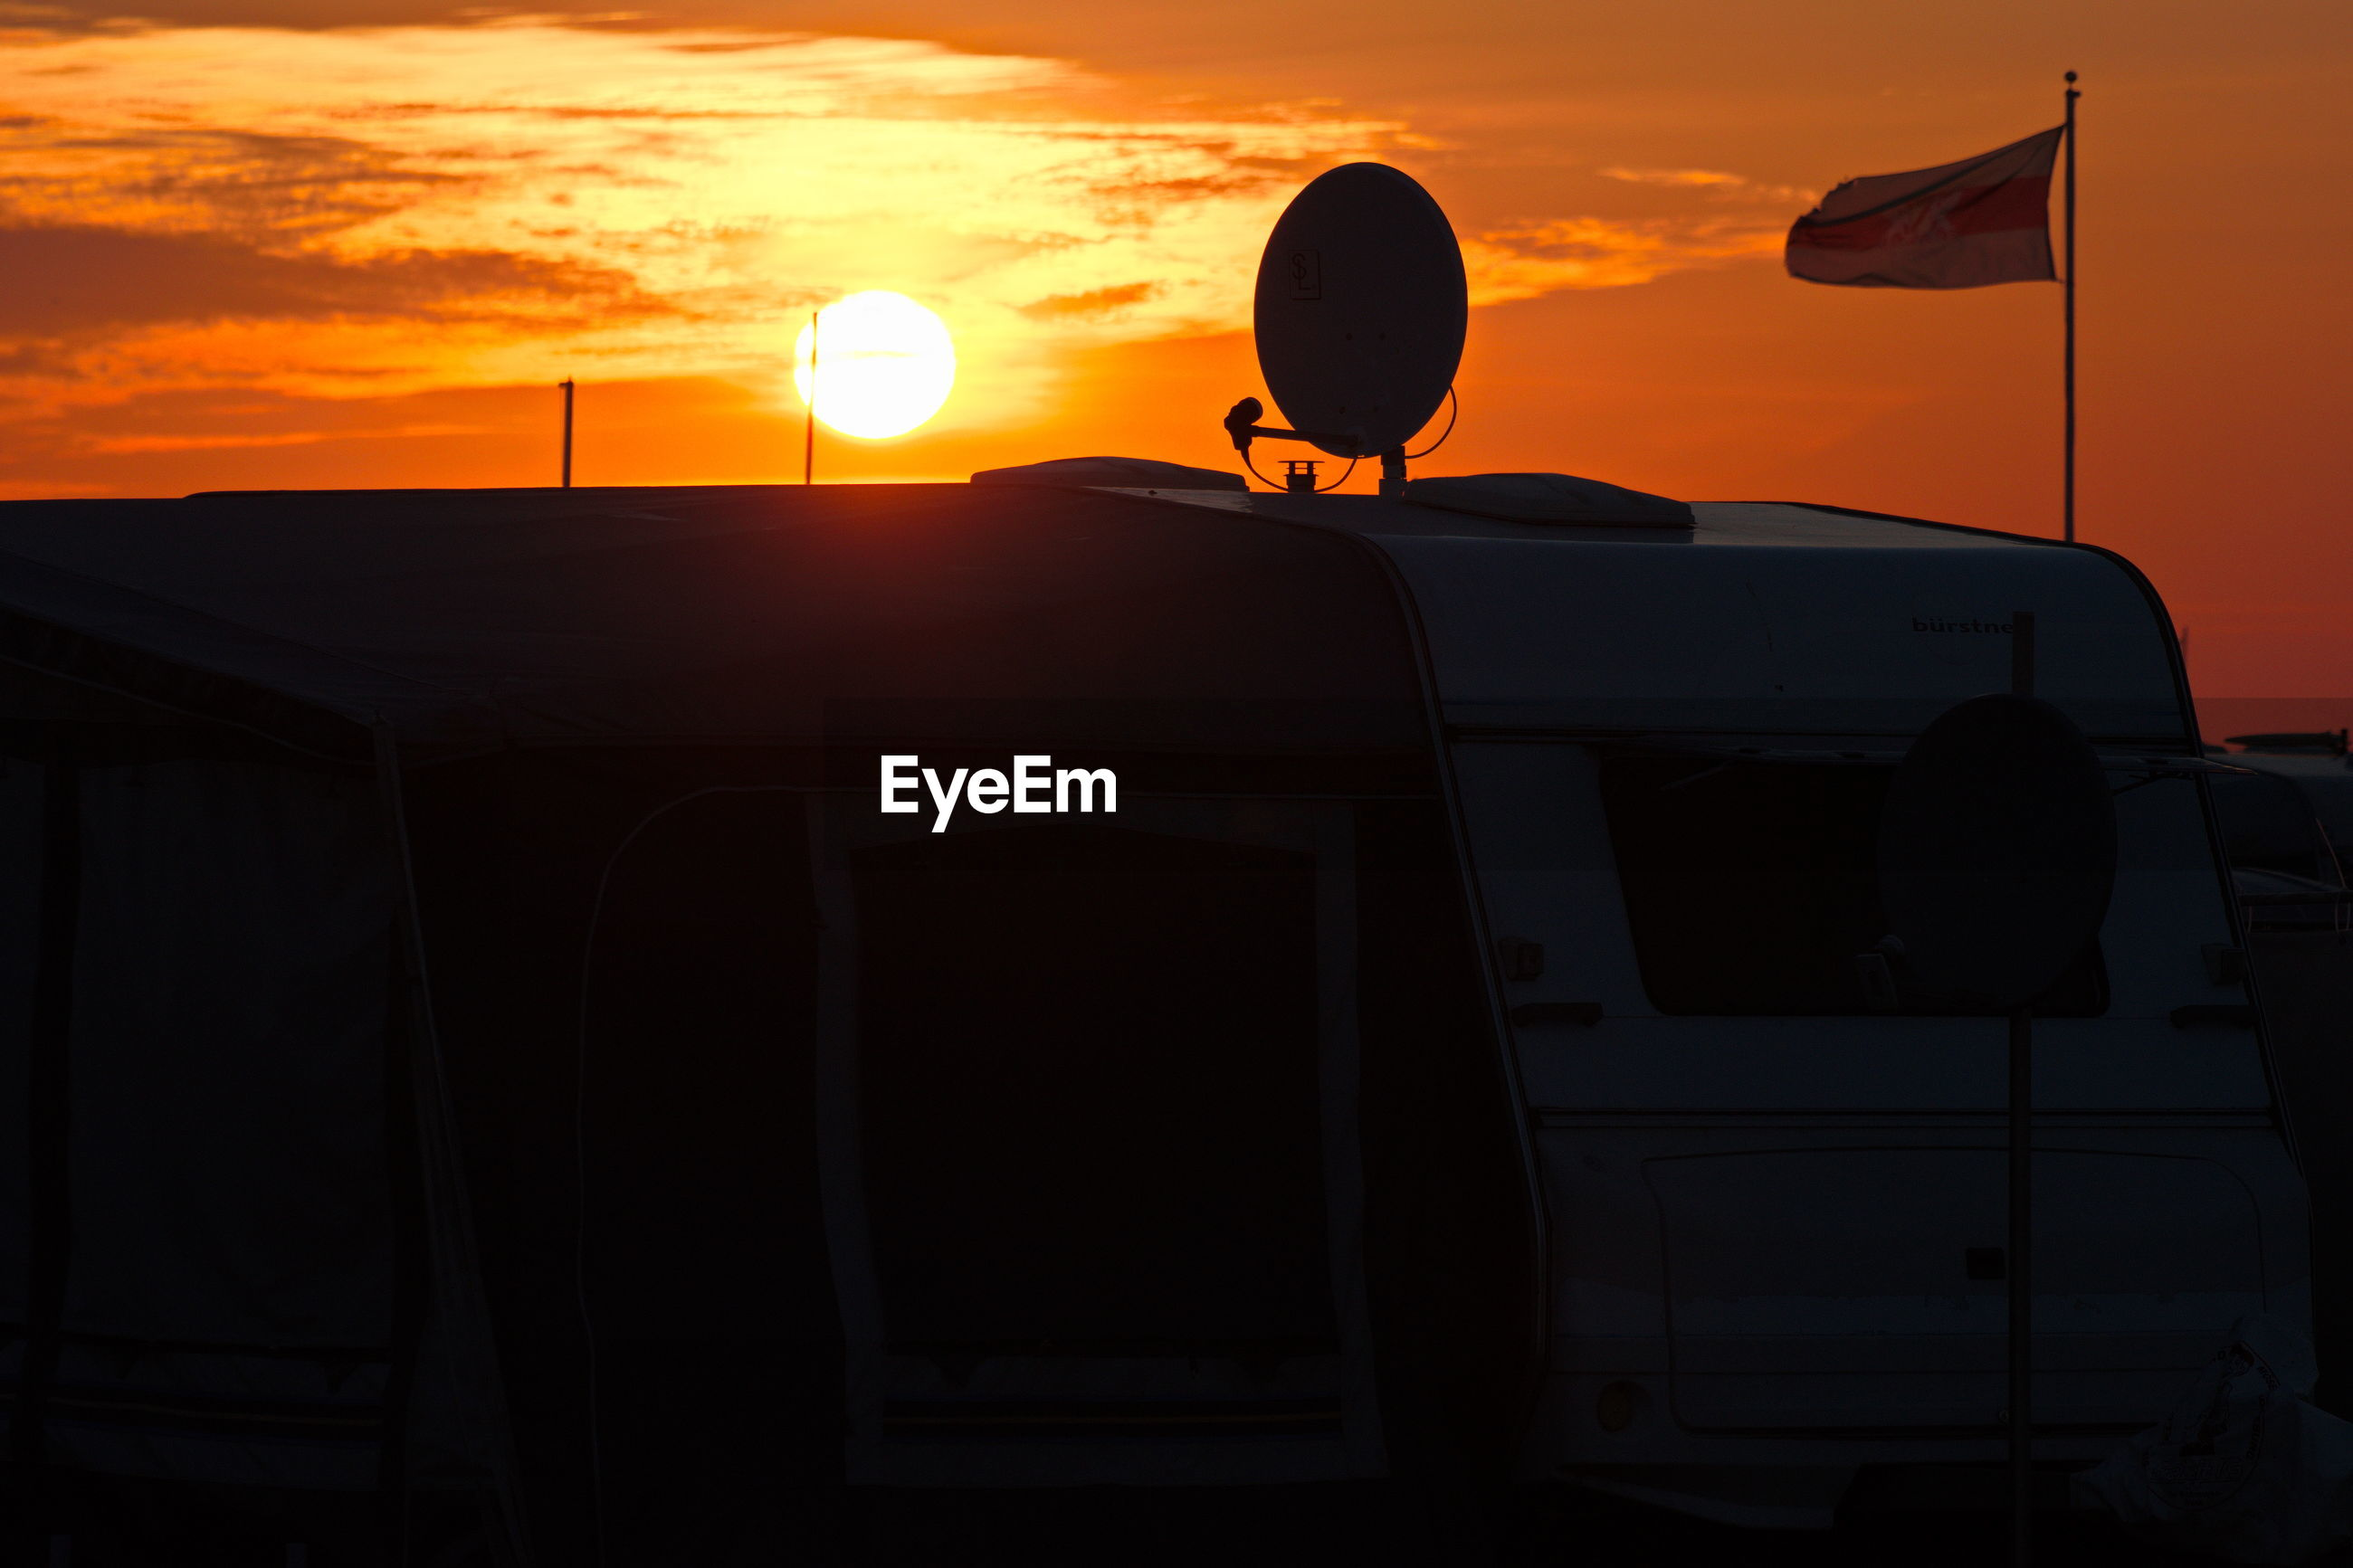 Flag and satellite dish on motor home against sky during sunset